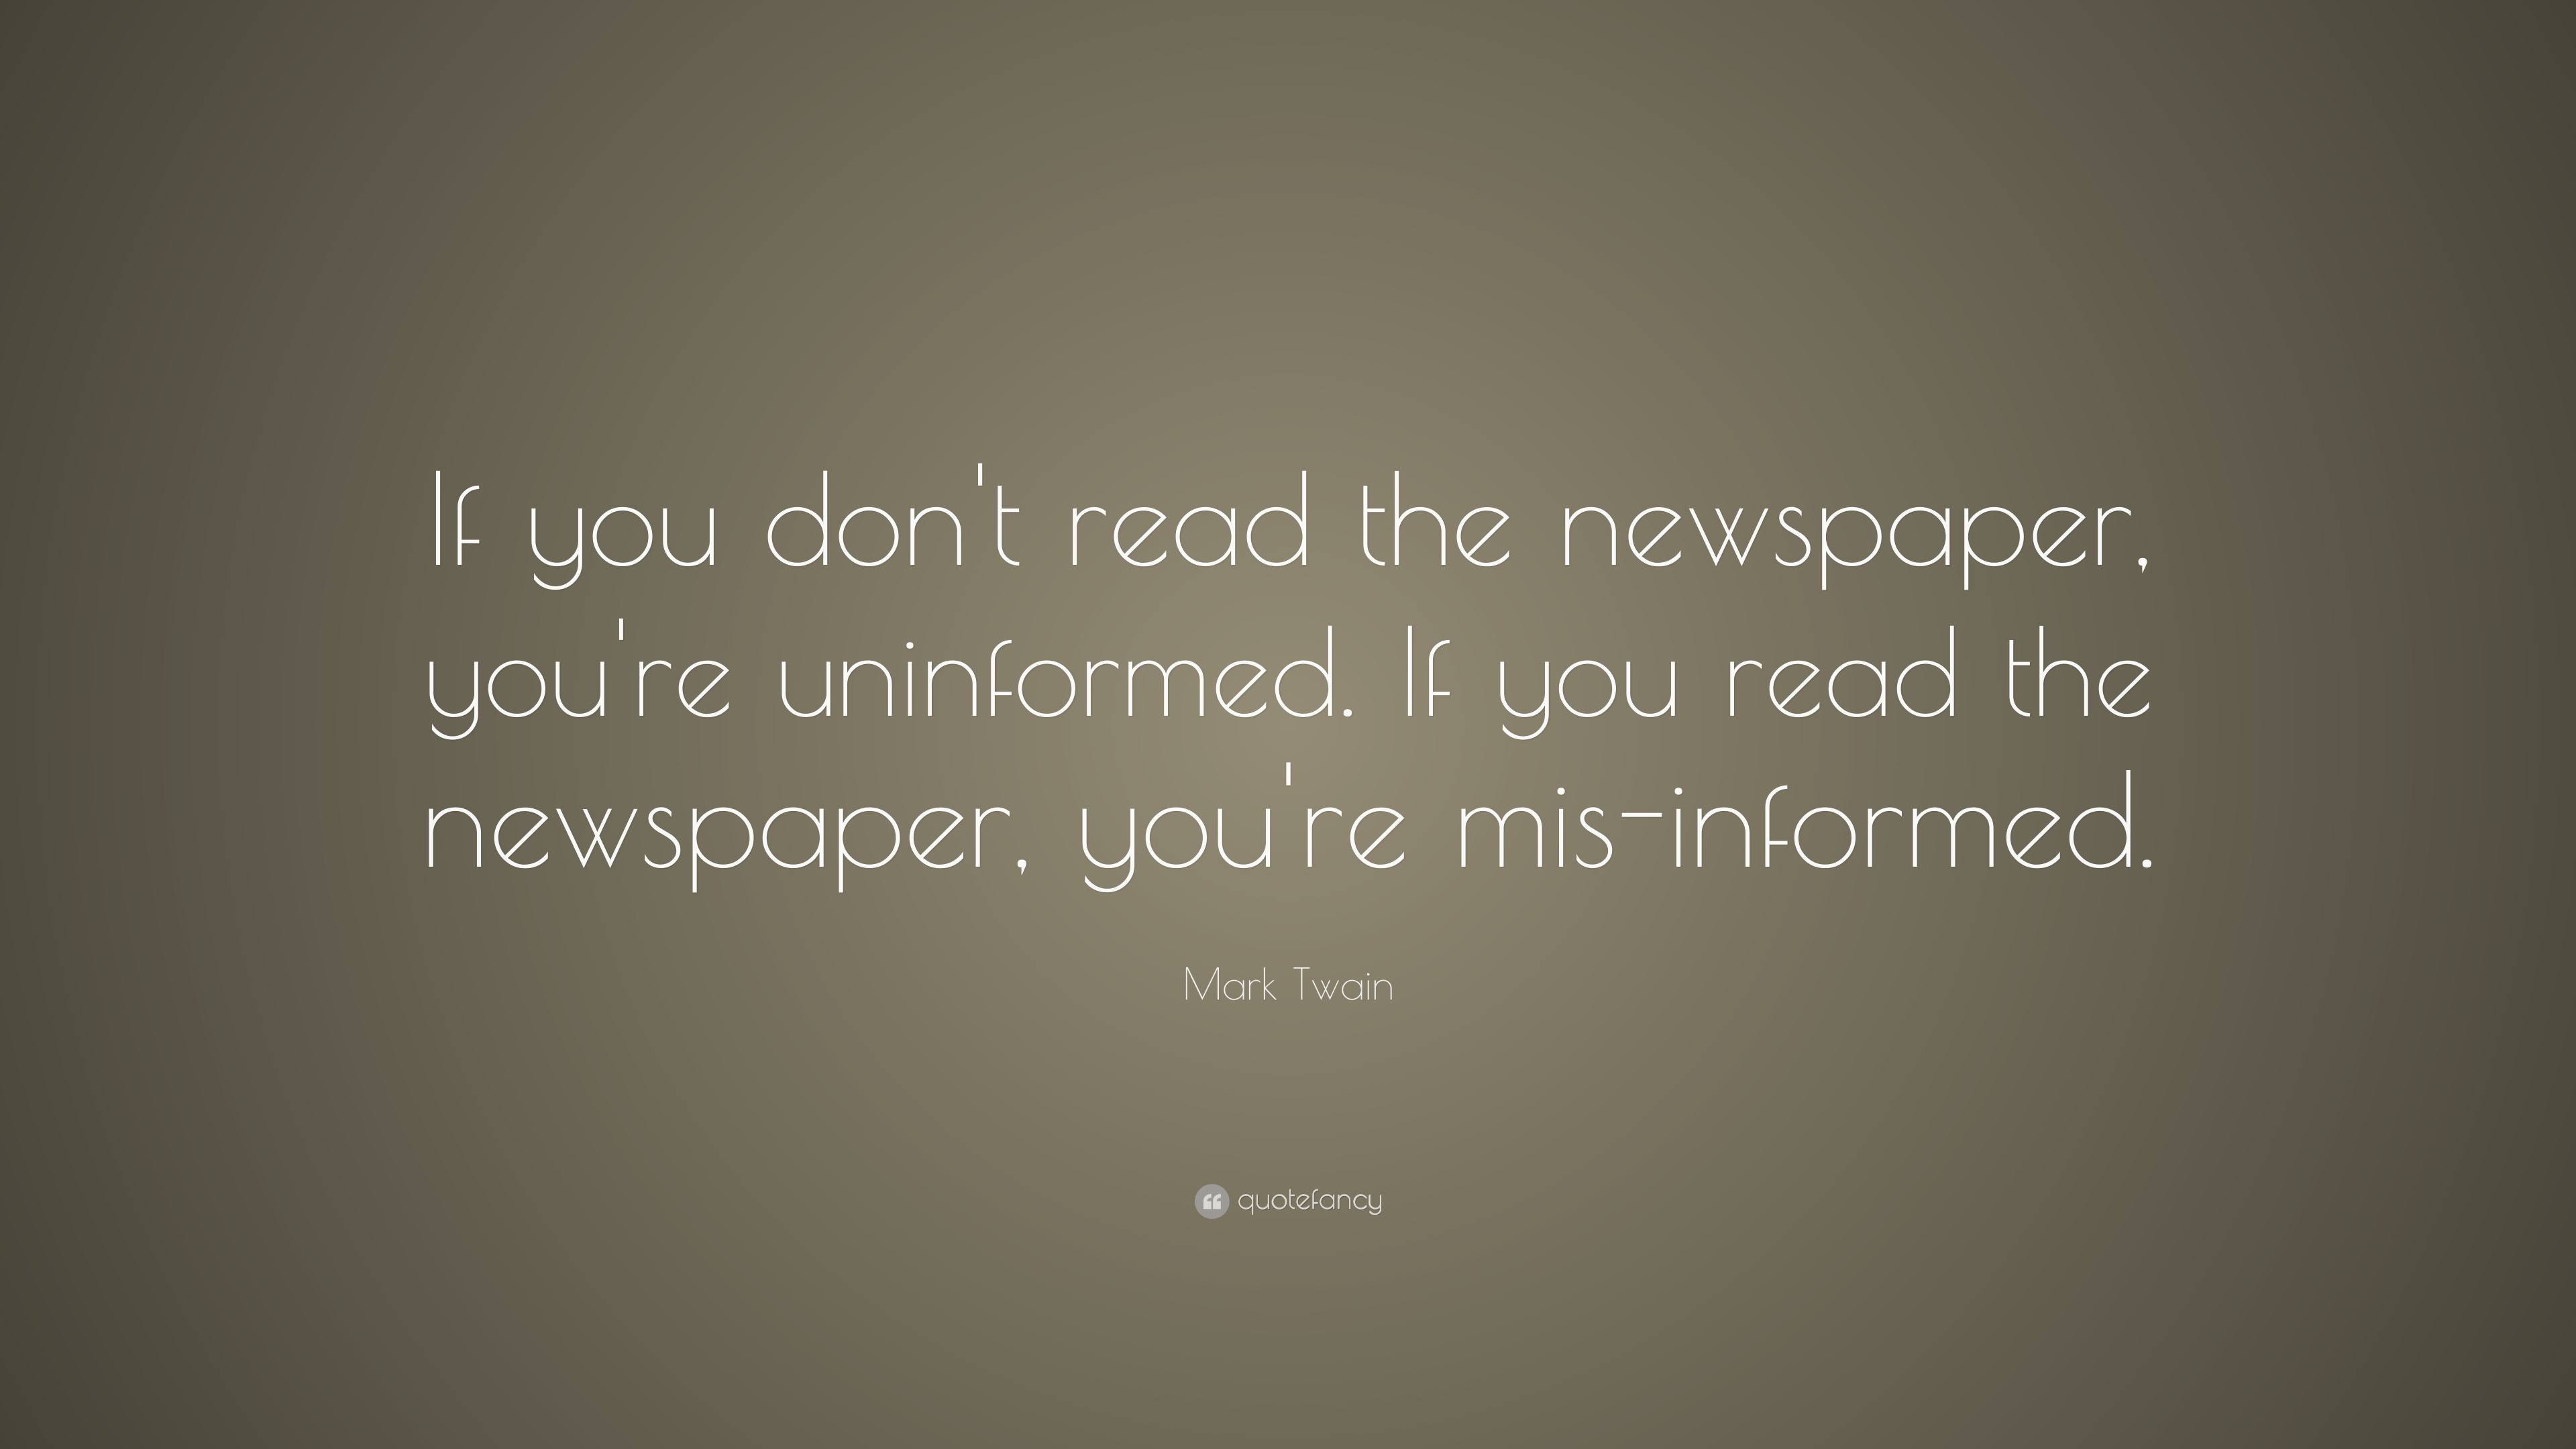 Mark Twain If You Don't Read the Newspaper